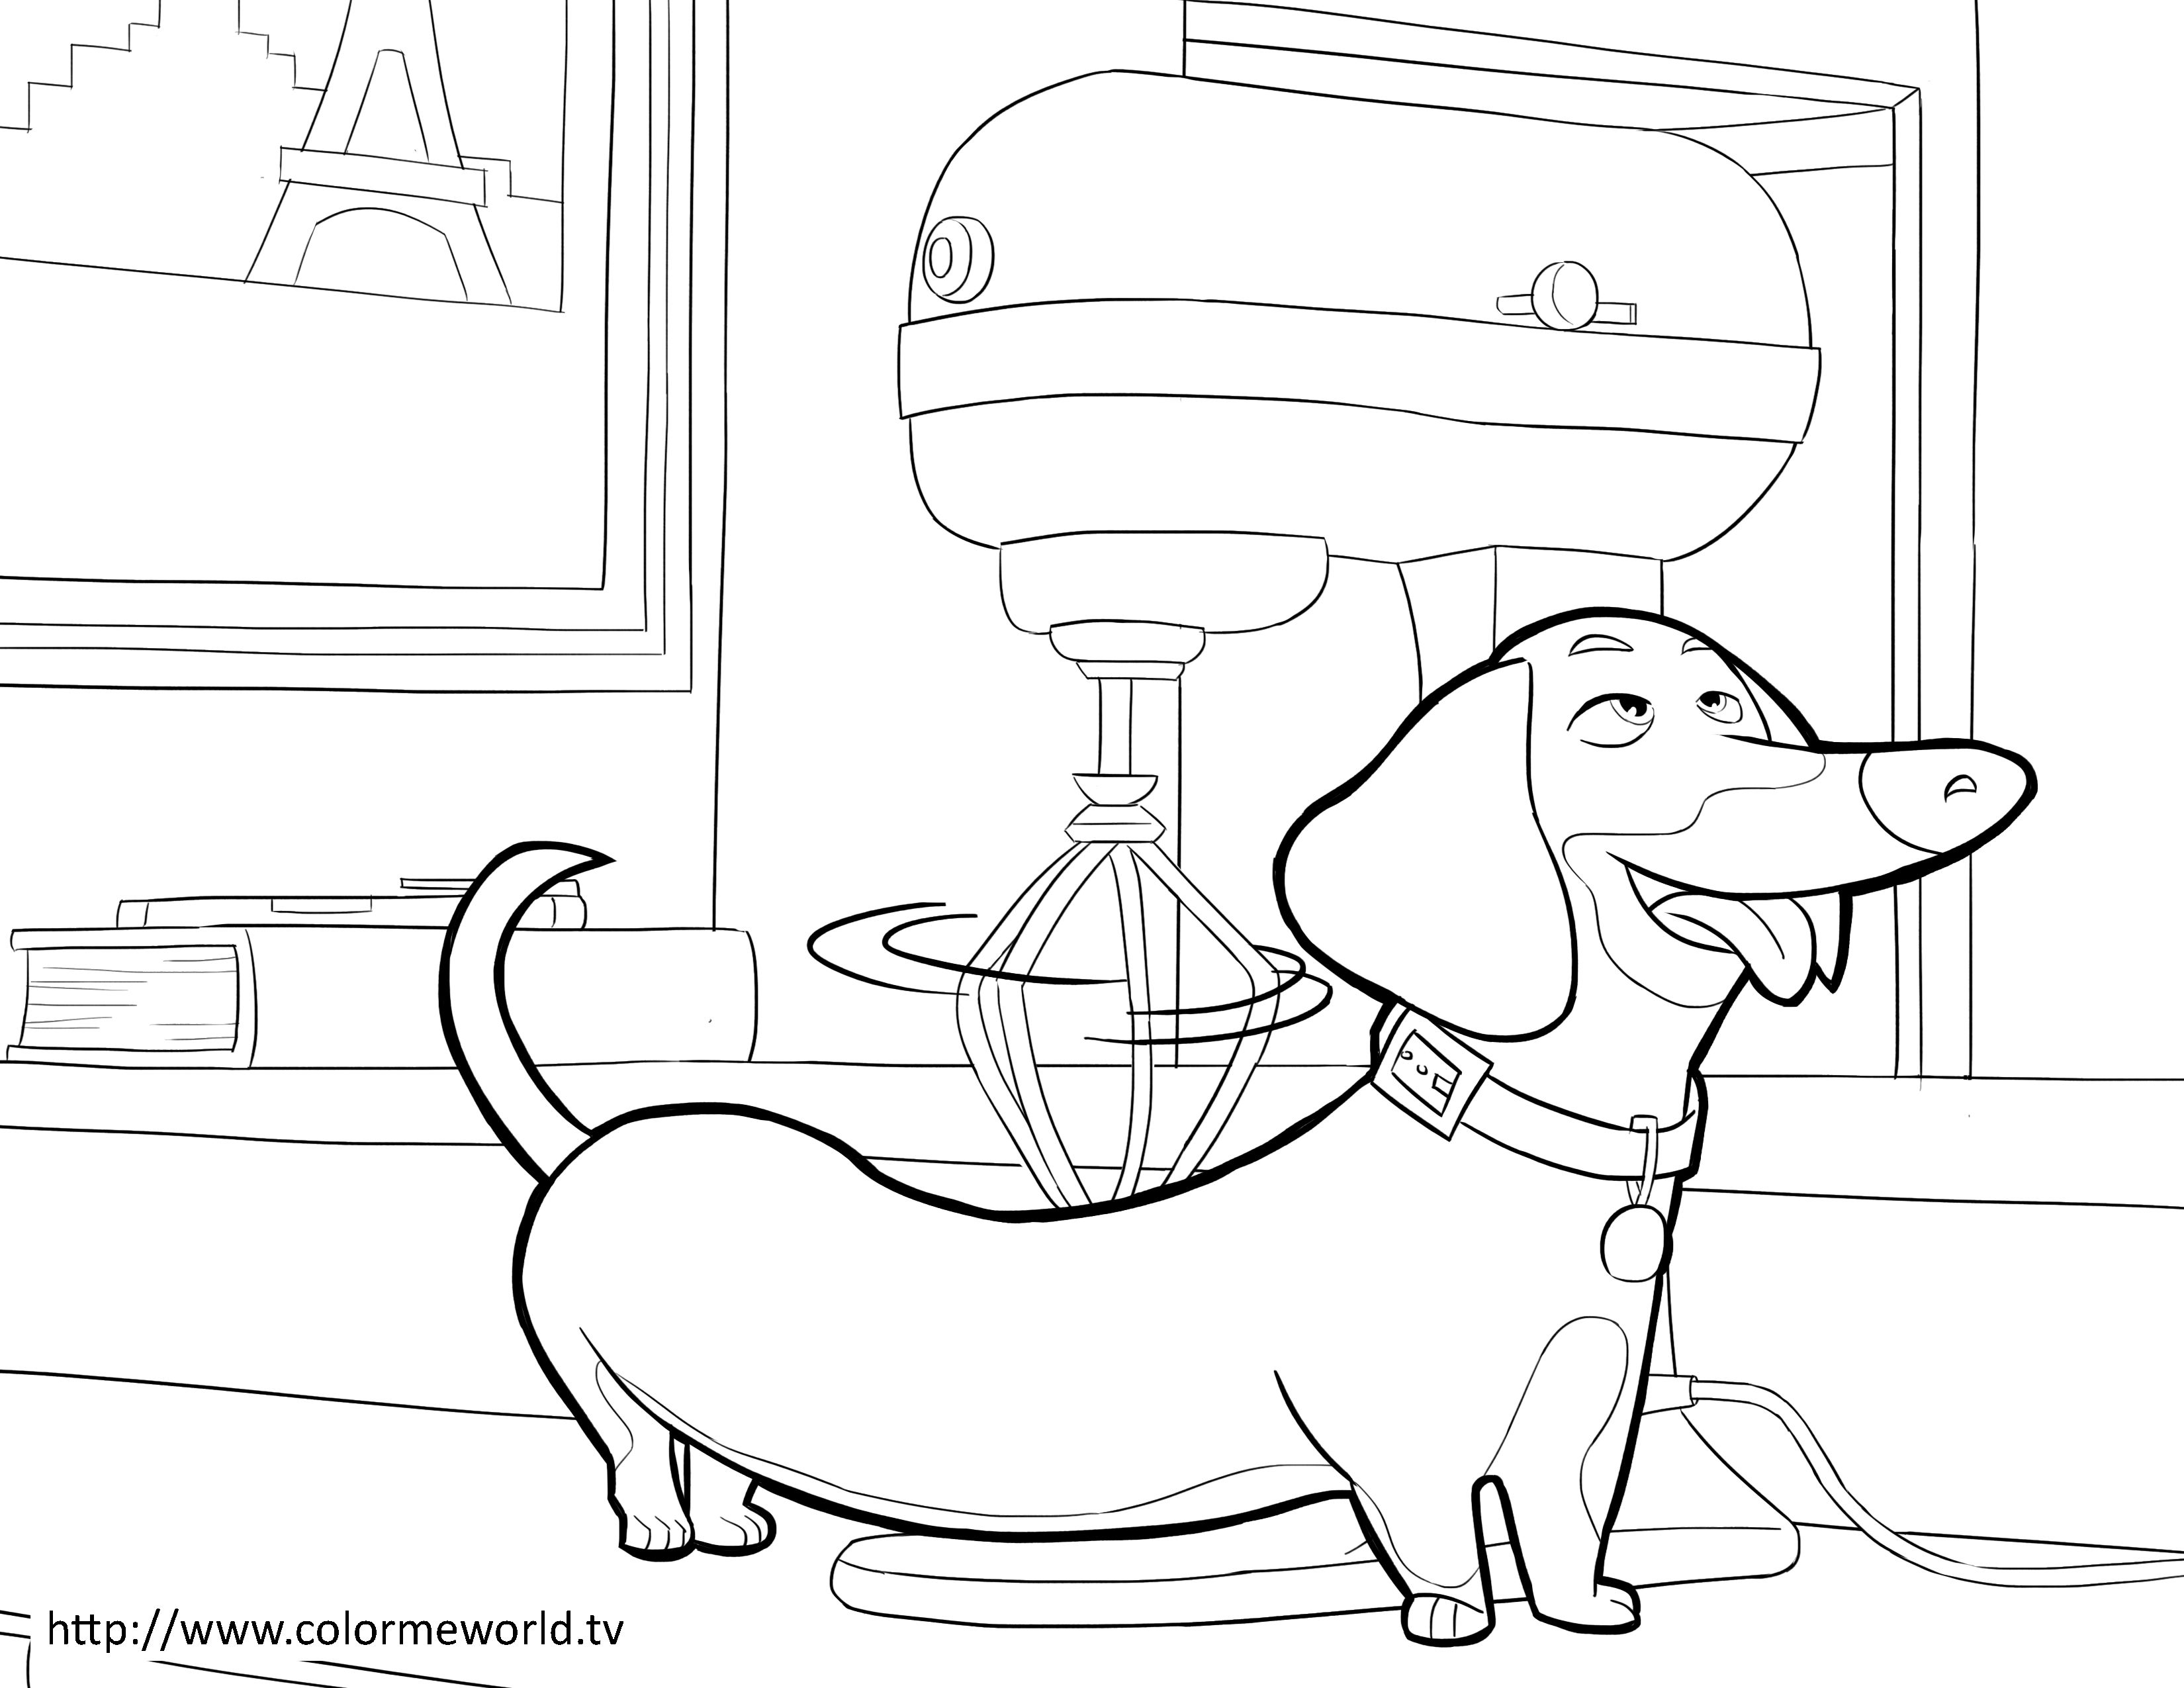 Buddy PDF Printable Coloring Page The Secret Life of